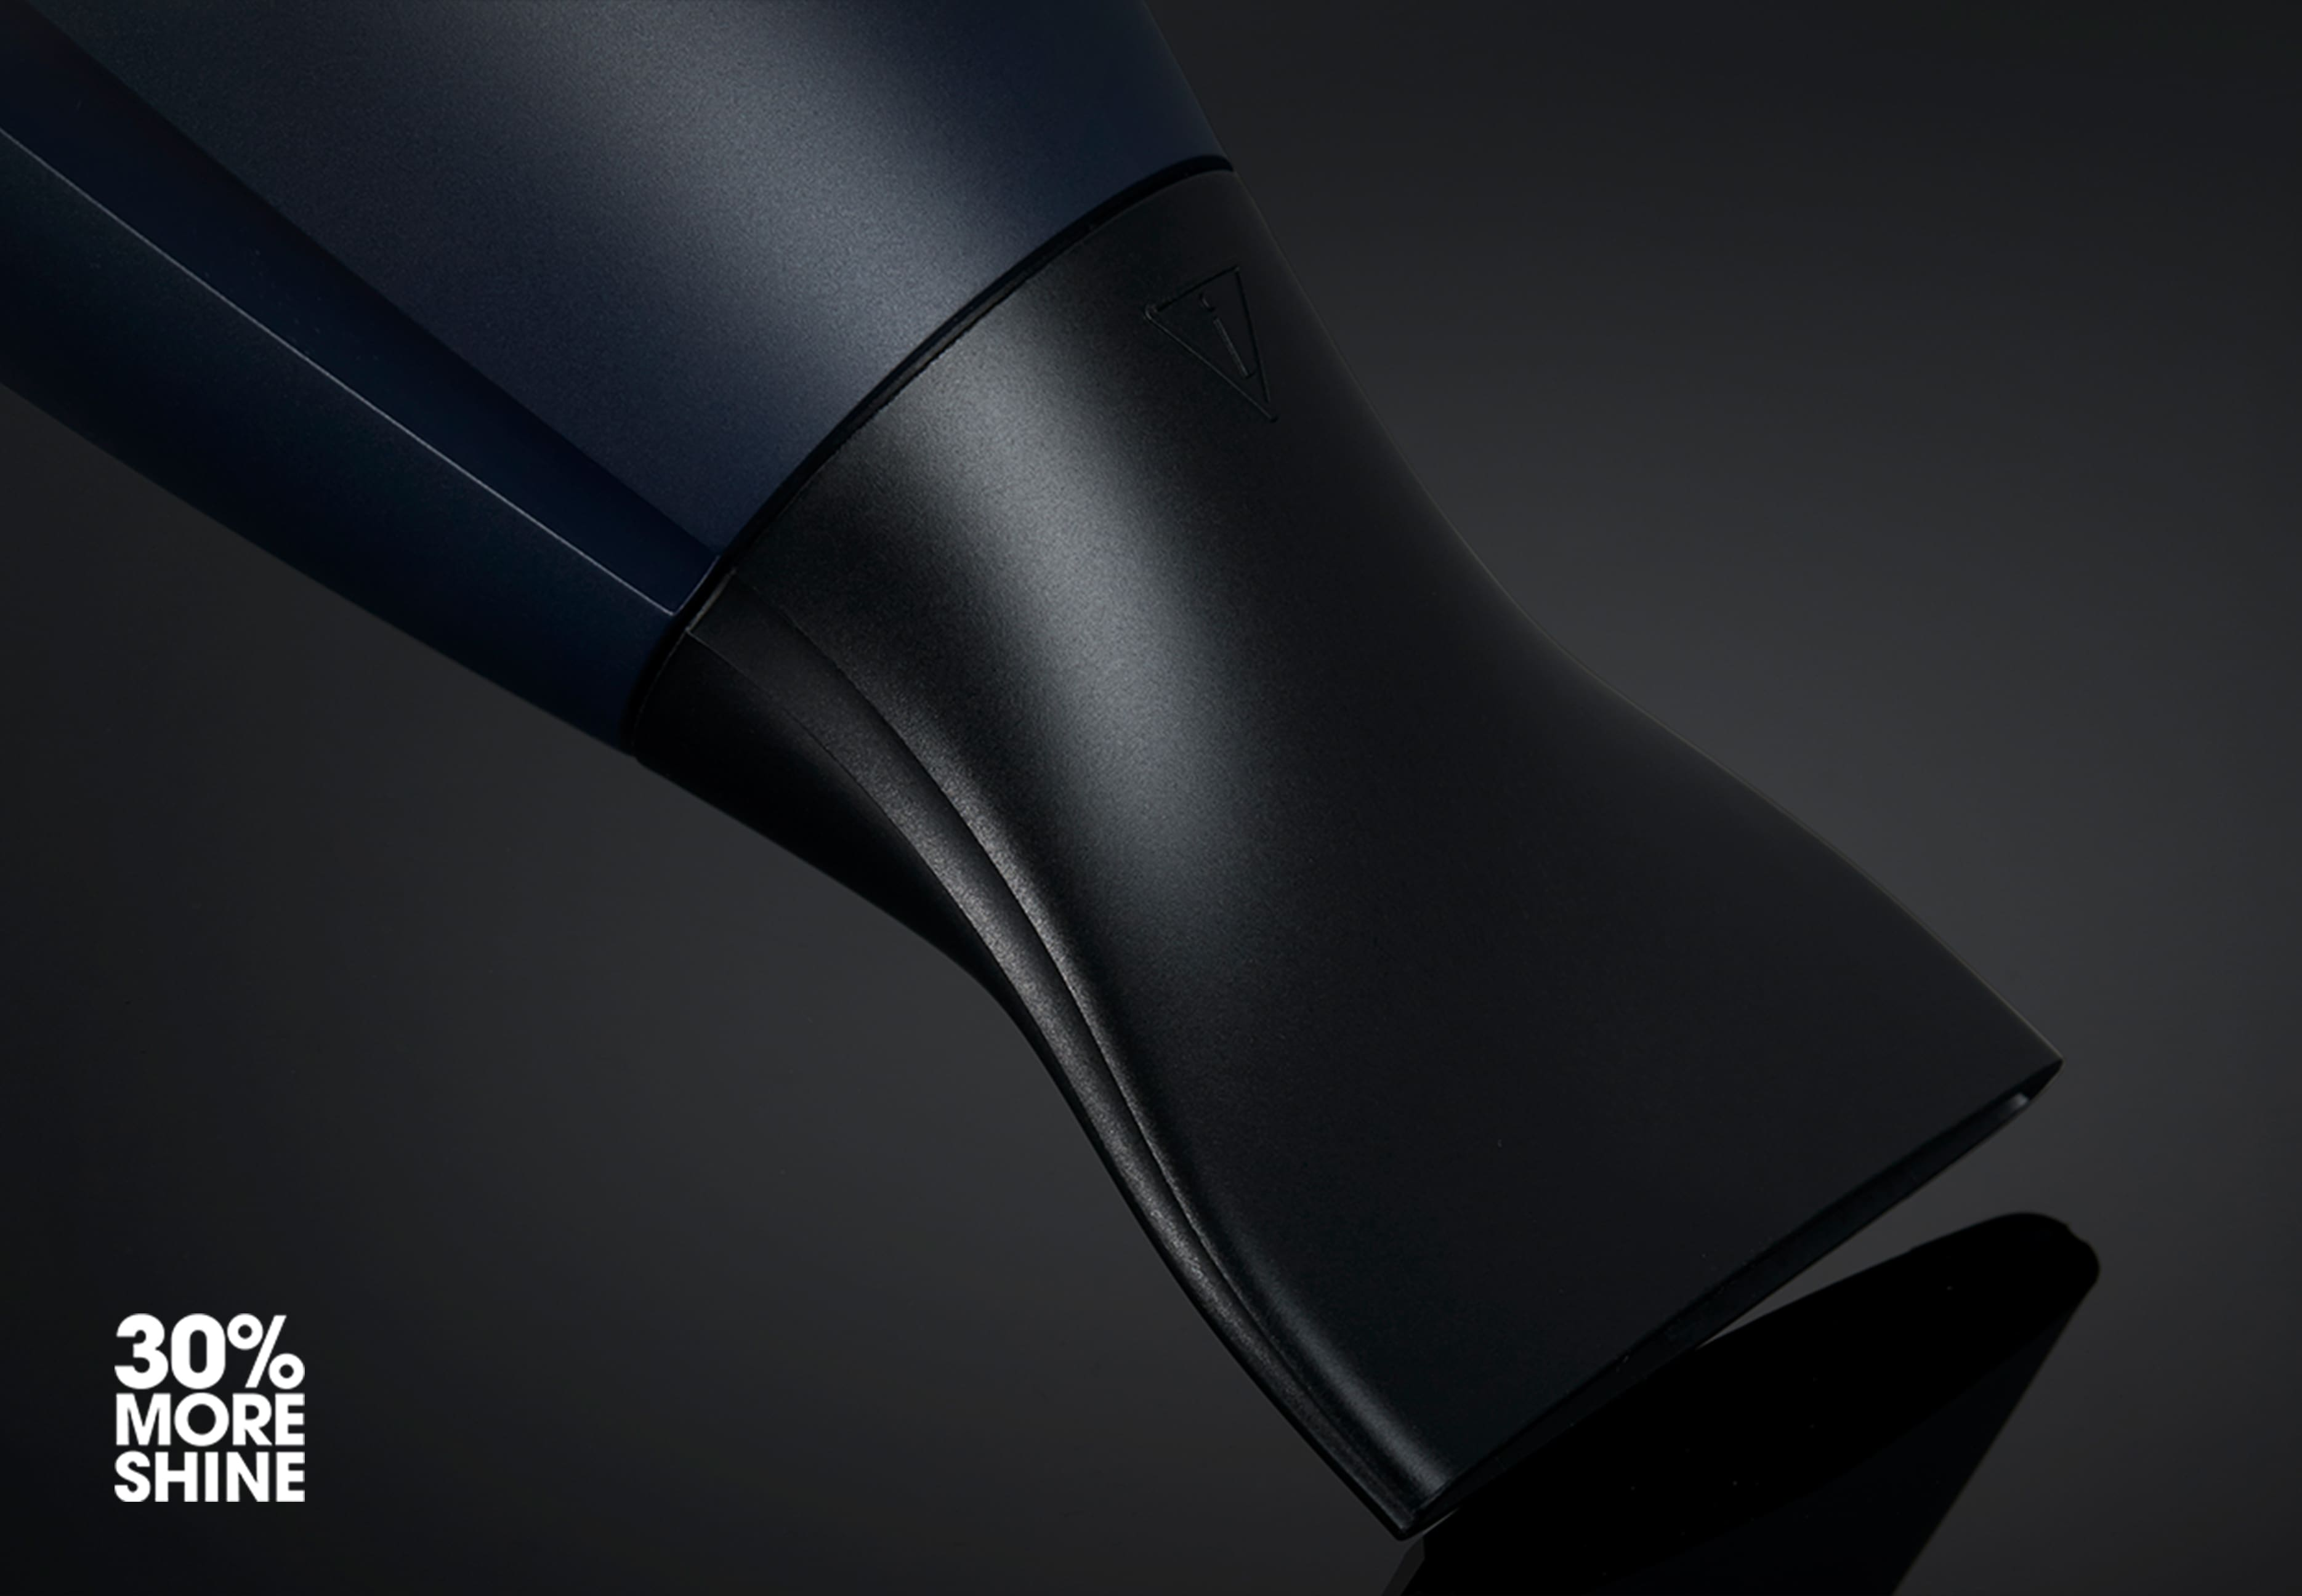 ghd helios hair dryer in navy nozzle close-up